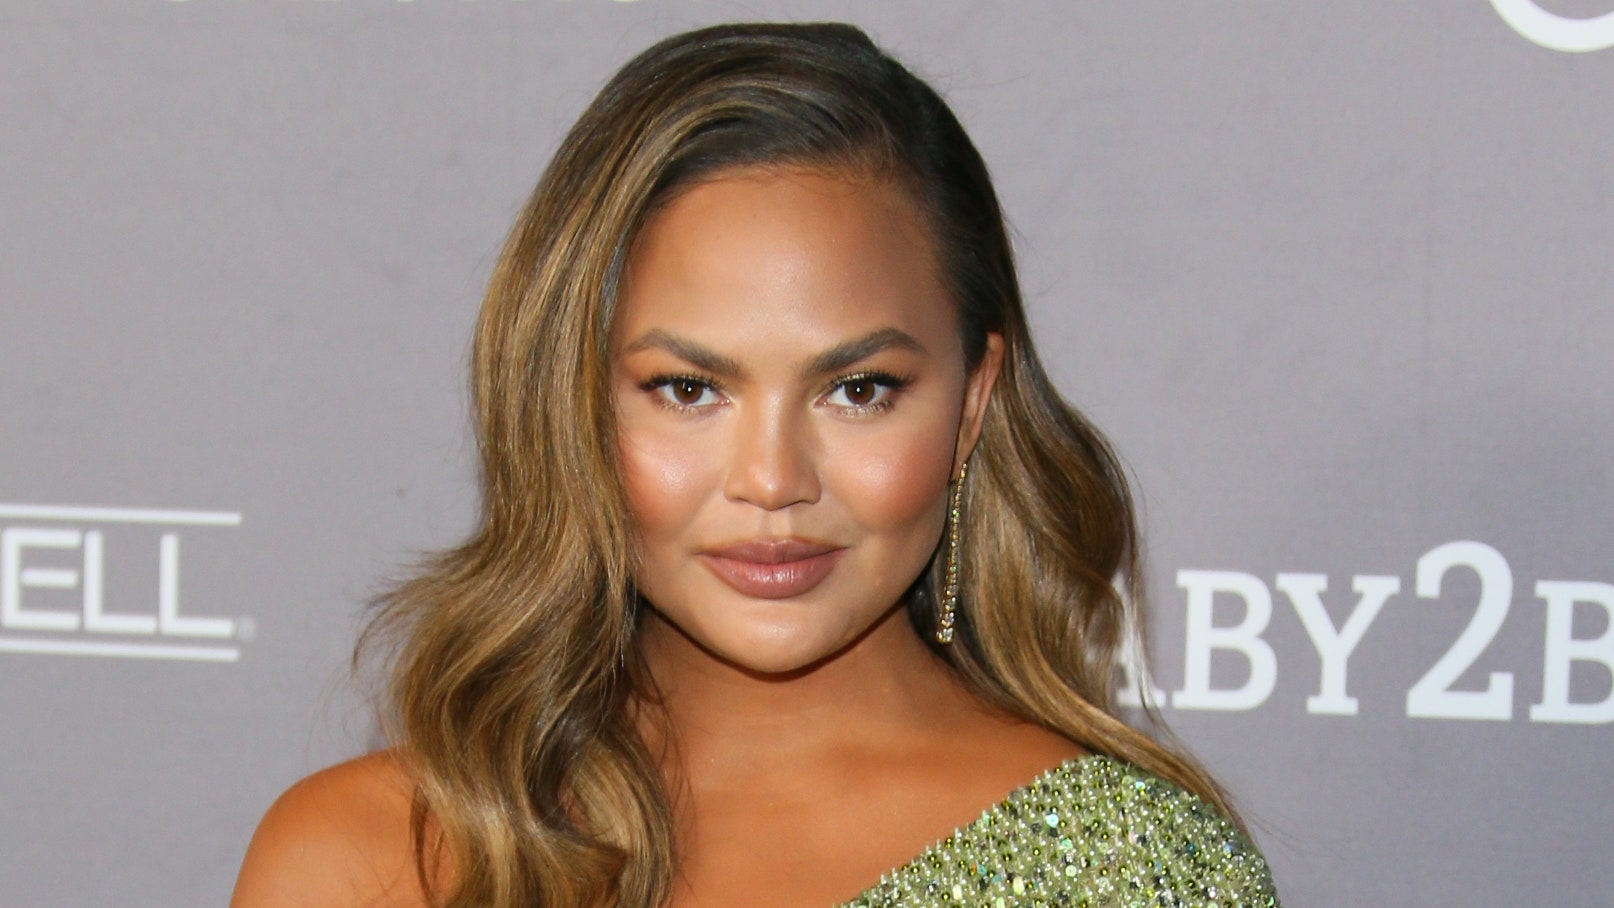 Chrissy Teigen Apologizes on Instagram For Past Mean Tweets